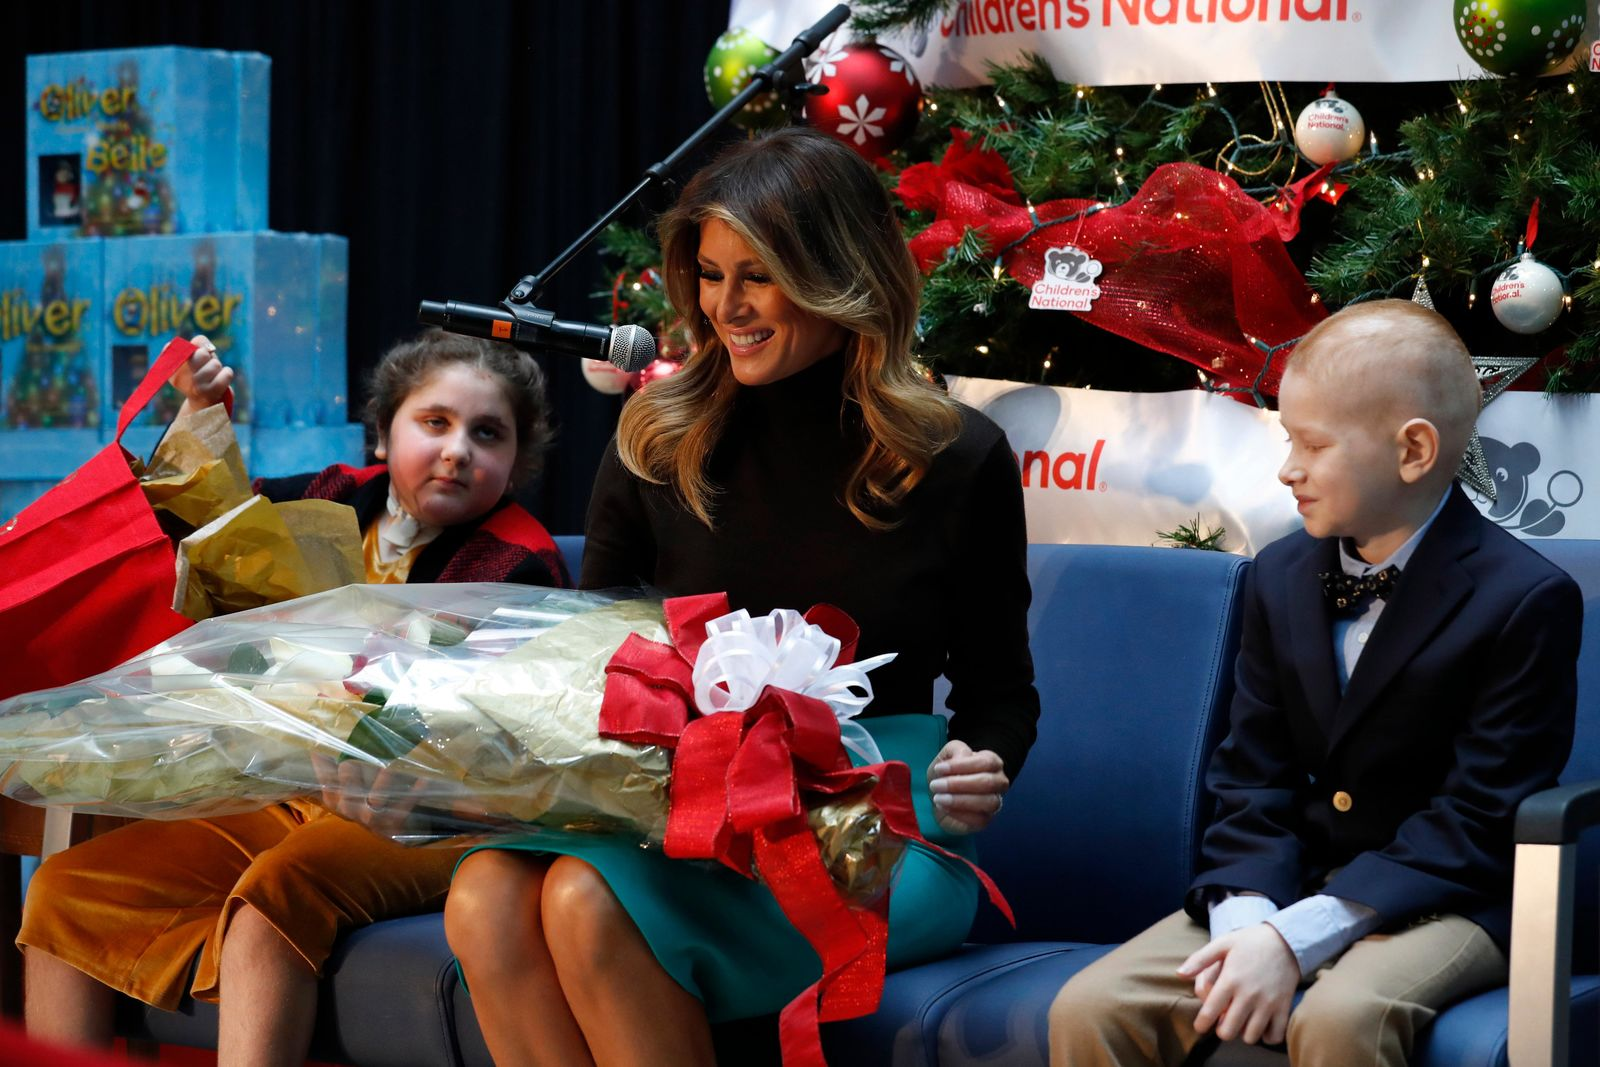 First lady Melania Trump reacts as she receives gifts from patients at Children's National Hospital, Sammie Burley, left, and Declan McCahan, right, Friday, Dec. 6, 2019, after reading a Christmas book to children at the hospital in Washington. (AP Photo/Jacquelyn Martin)